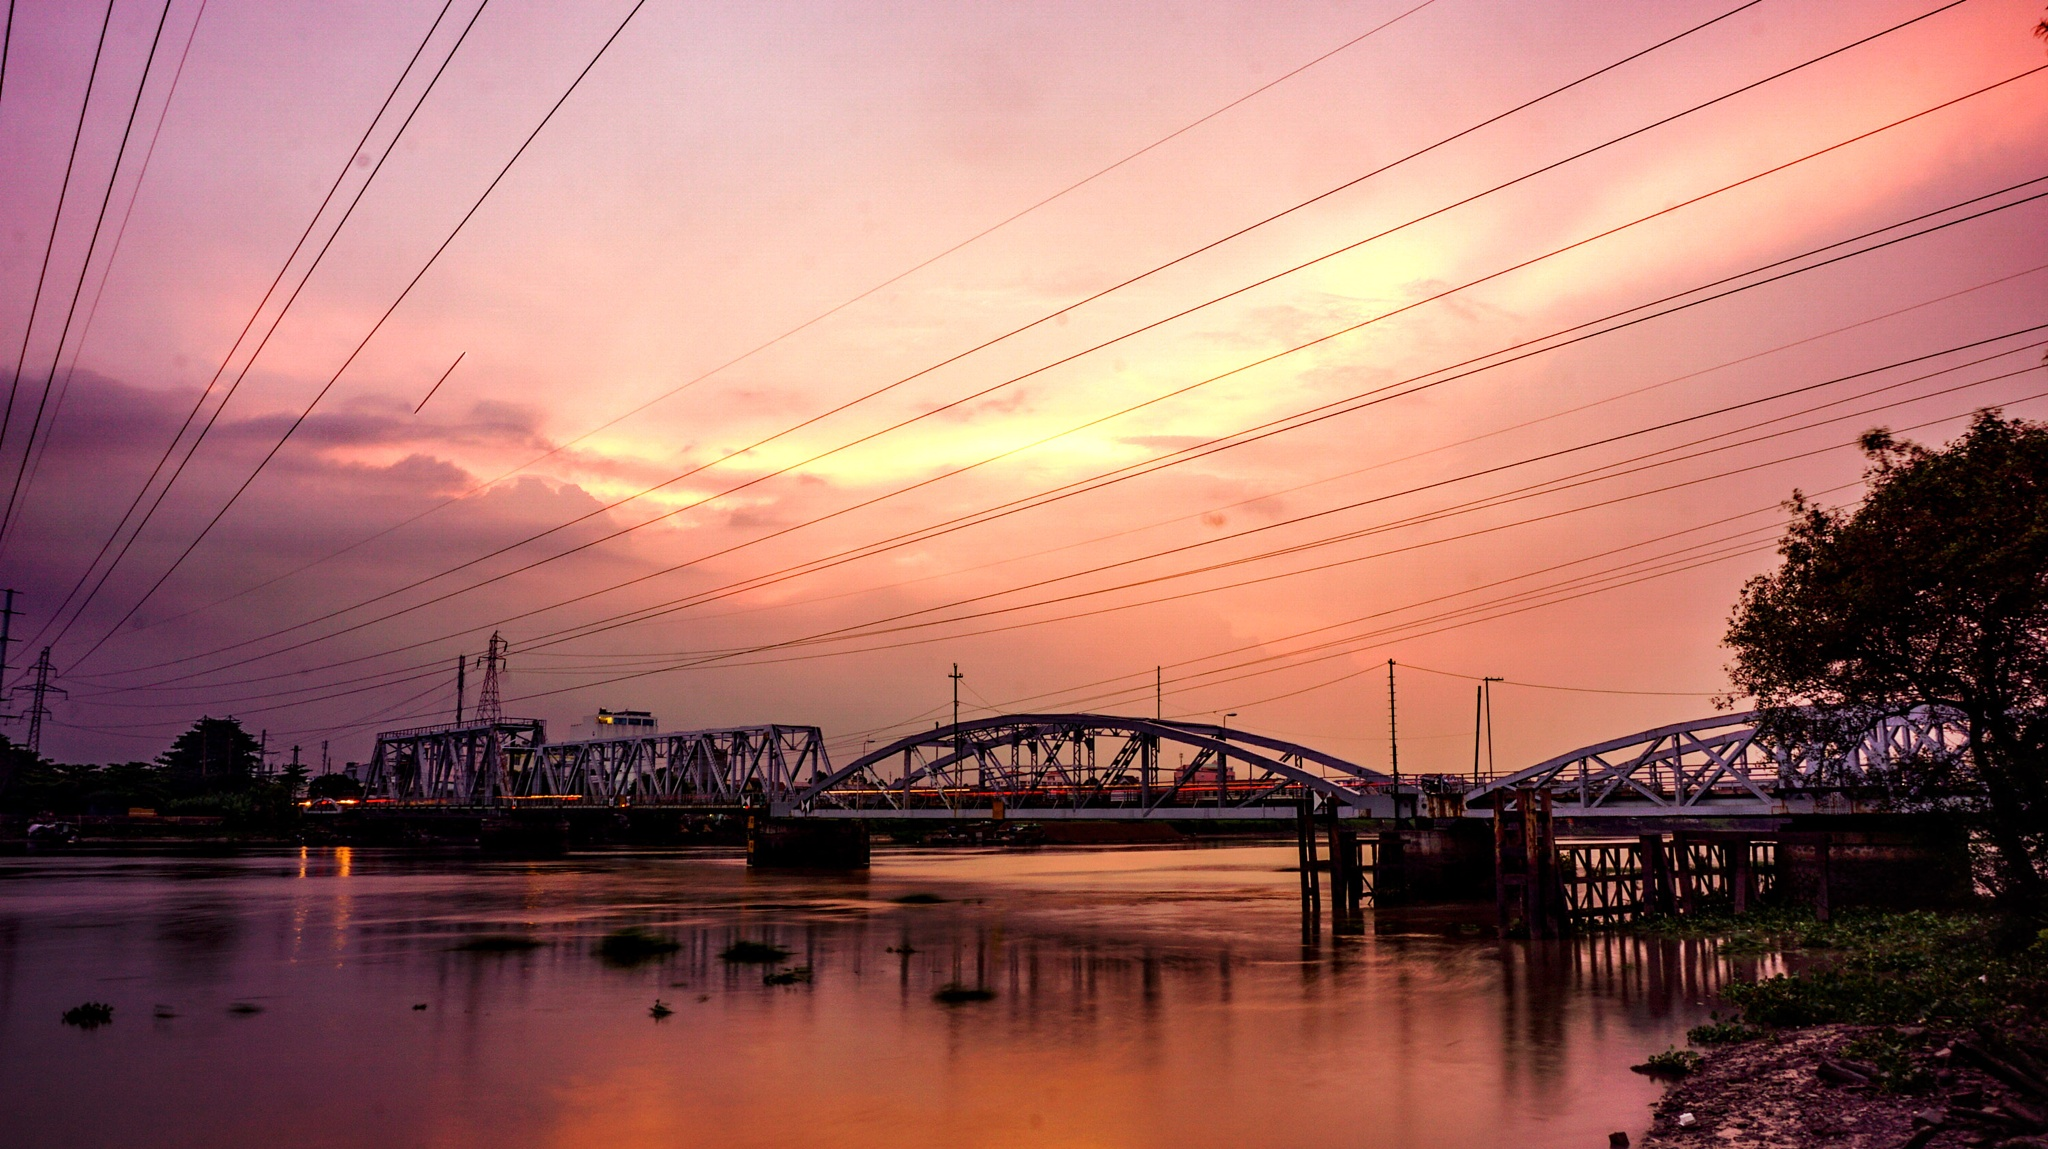 The bridge by bacong90